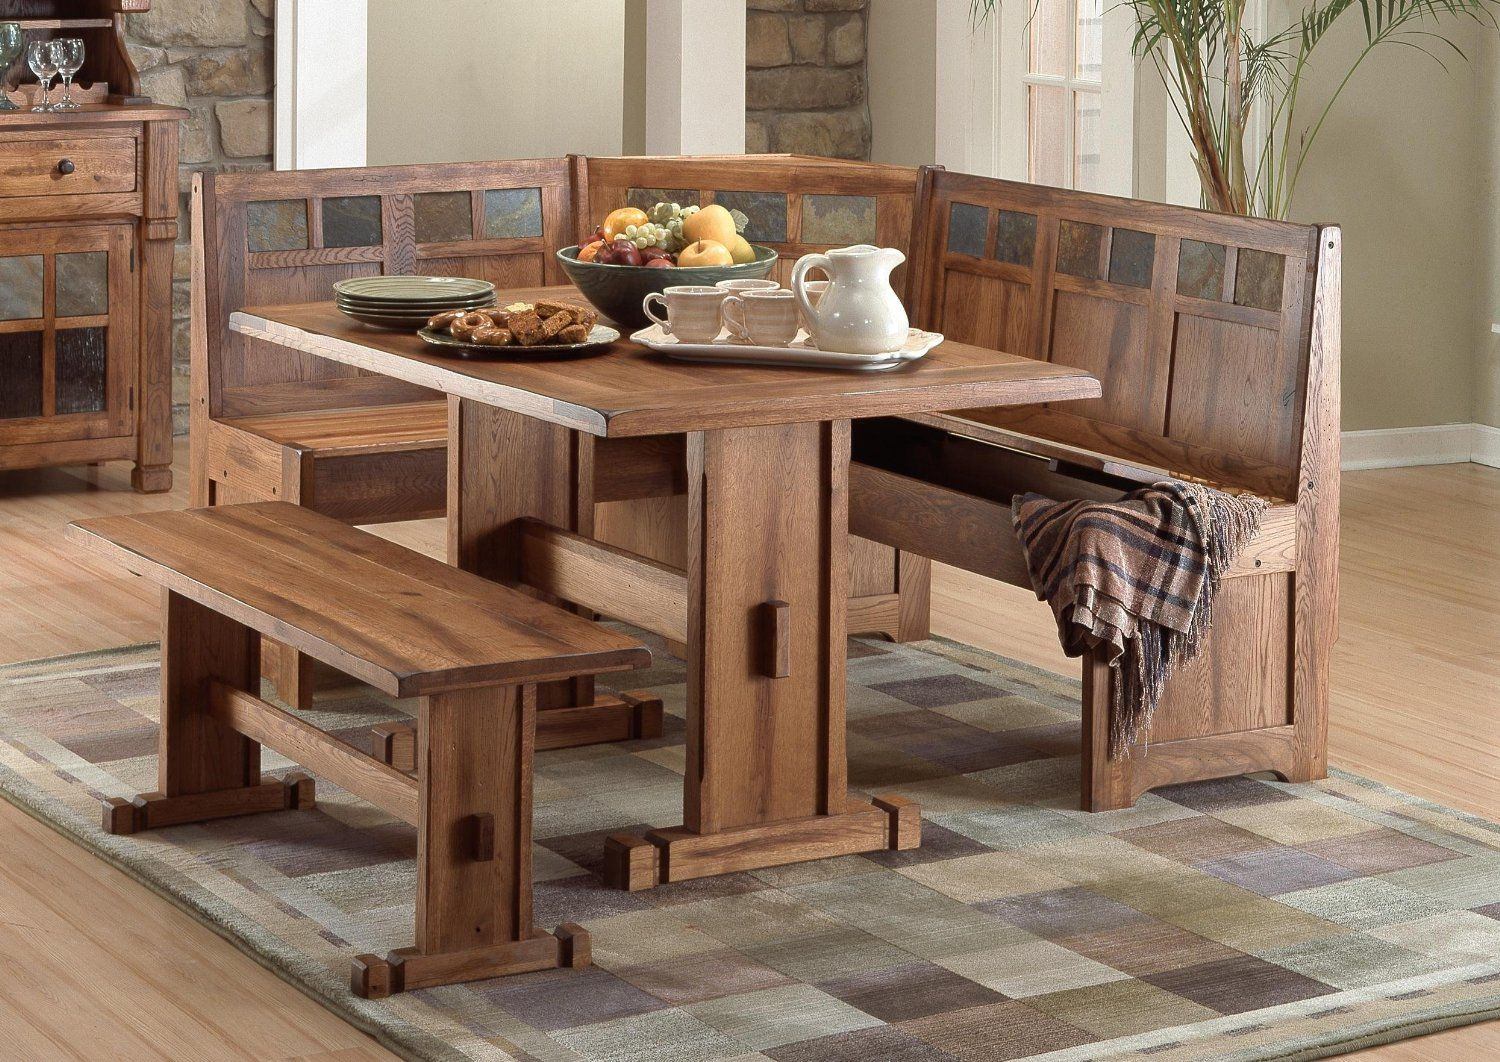 Kitchen table setsWood Kitchen Table With Bench Seating Designs Ideas   Dining Bench  . Dining Table With Benches. Home Design Ideas